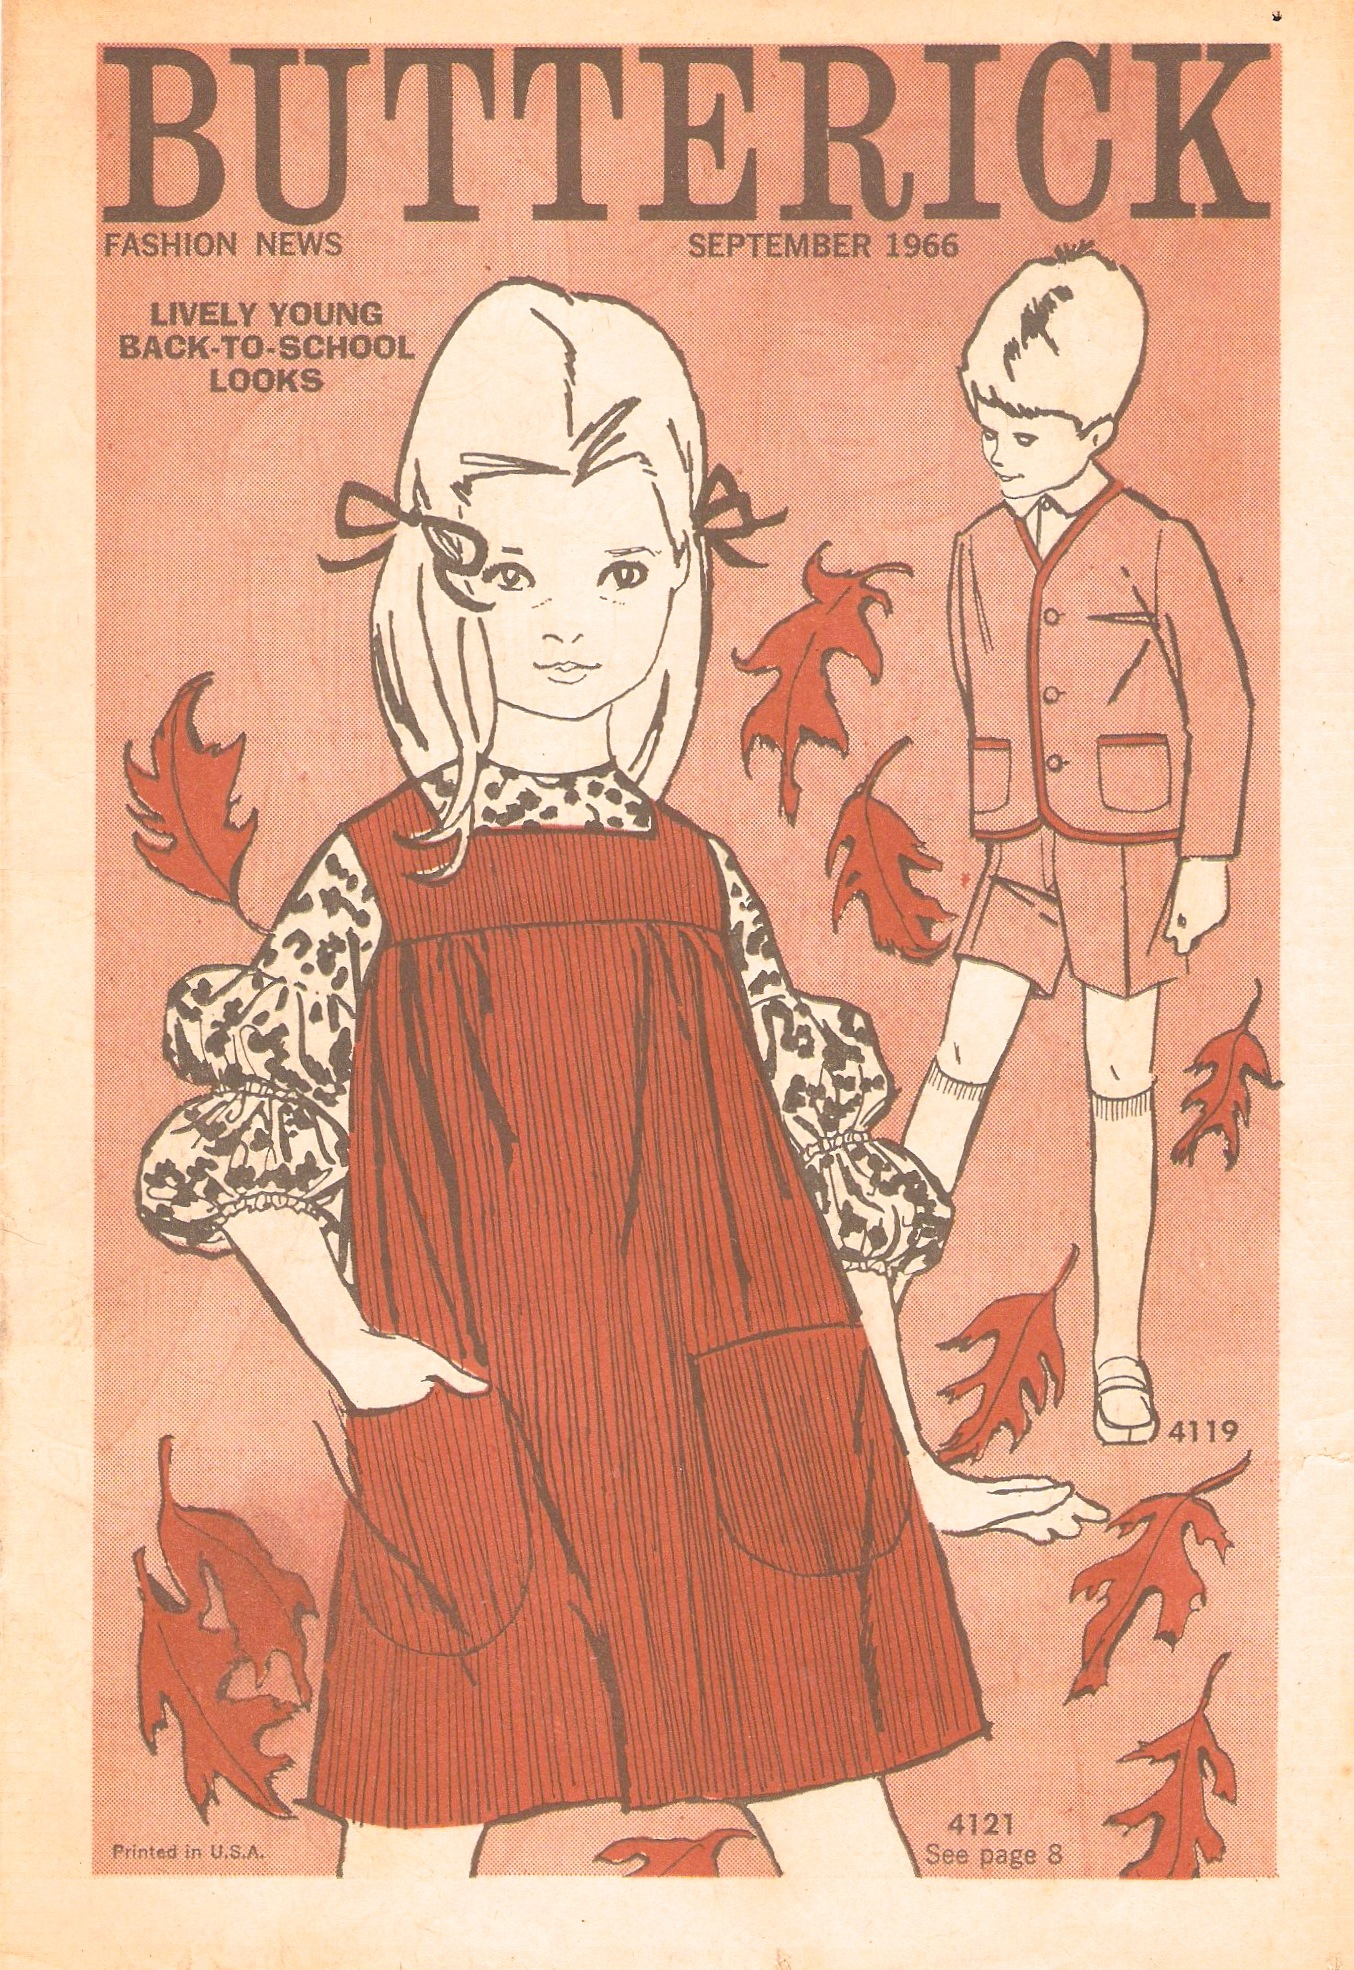 Butterick Fashion News September 1966